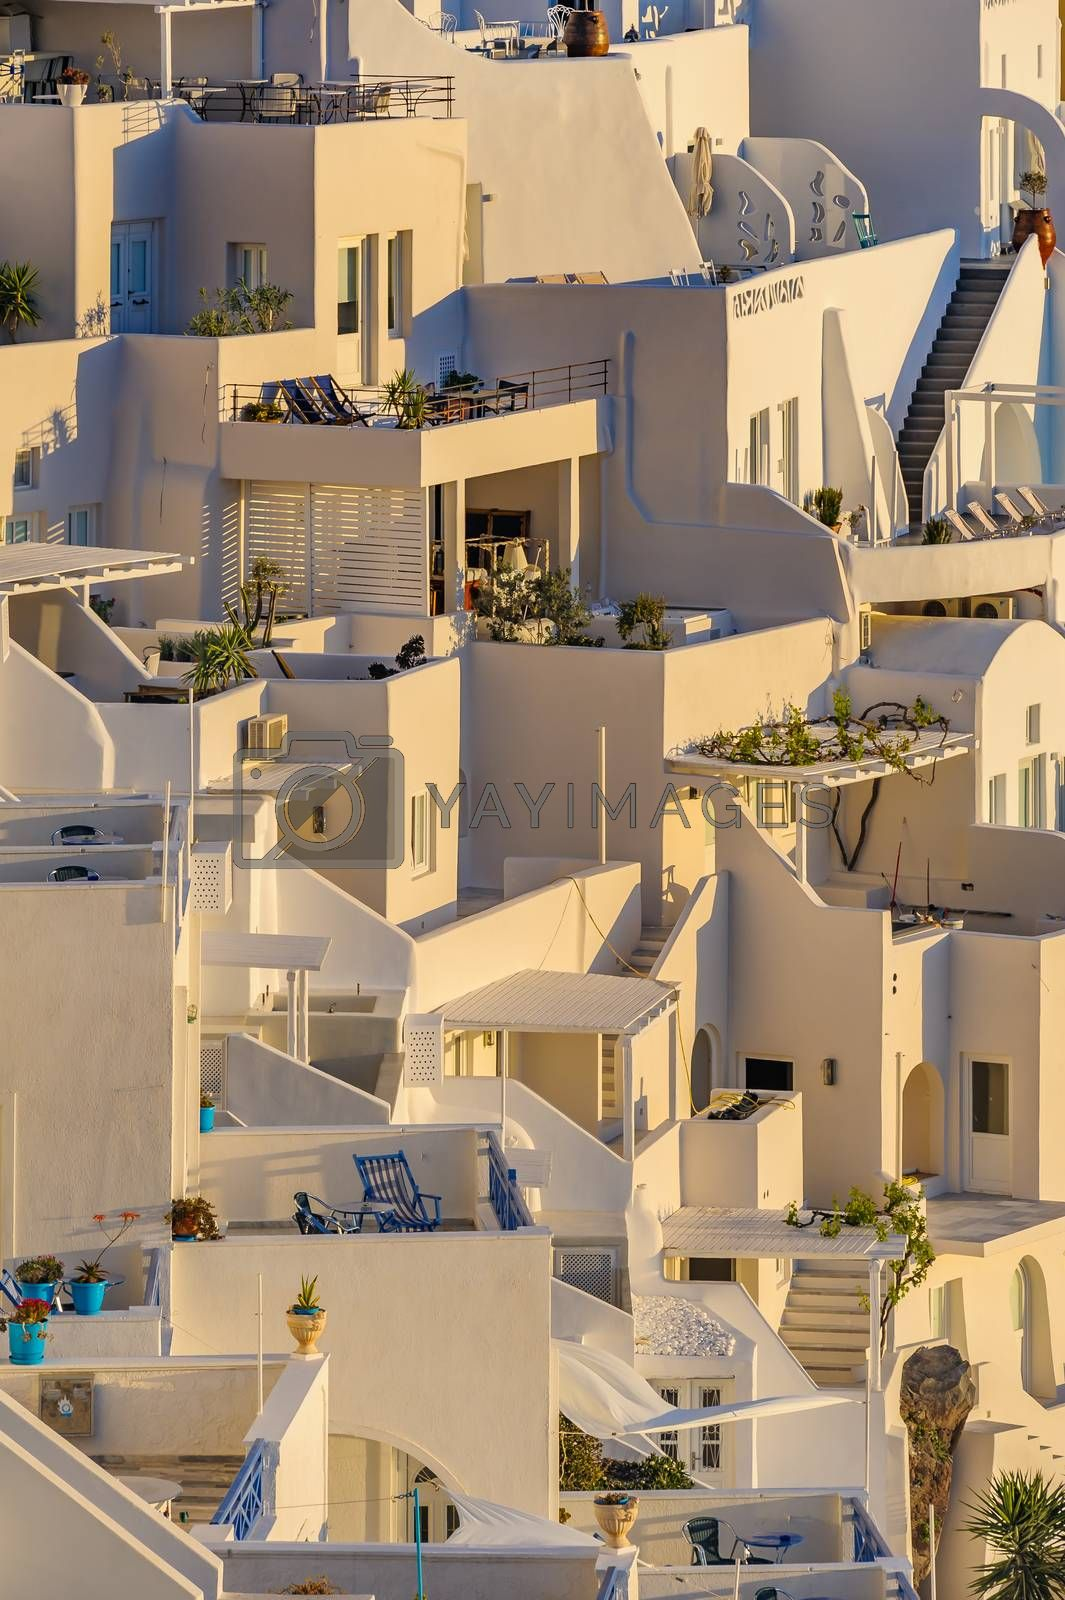 Typical view of Fira village patios at sunset, Santorini island, Greece